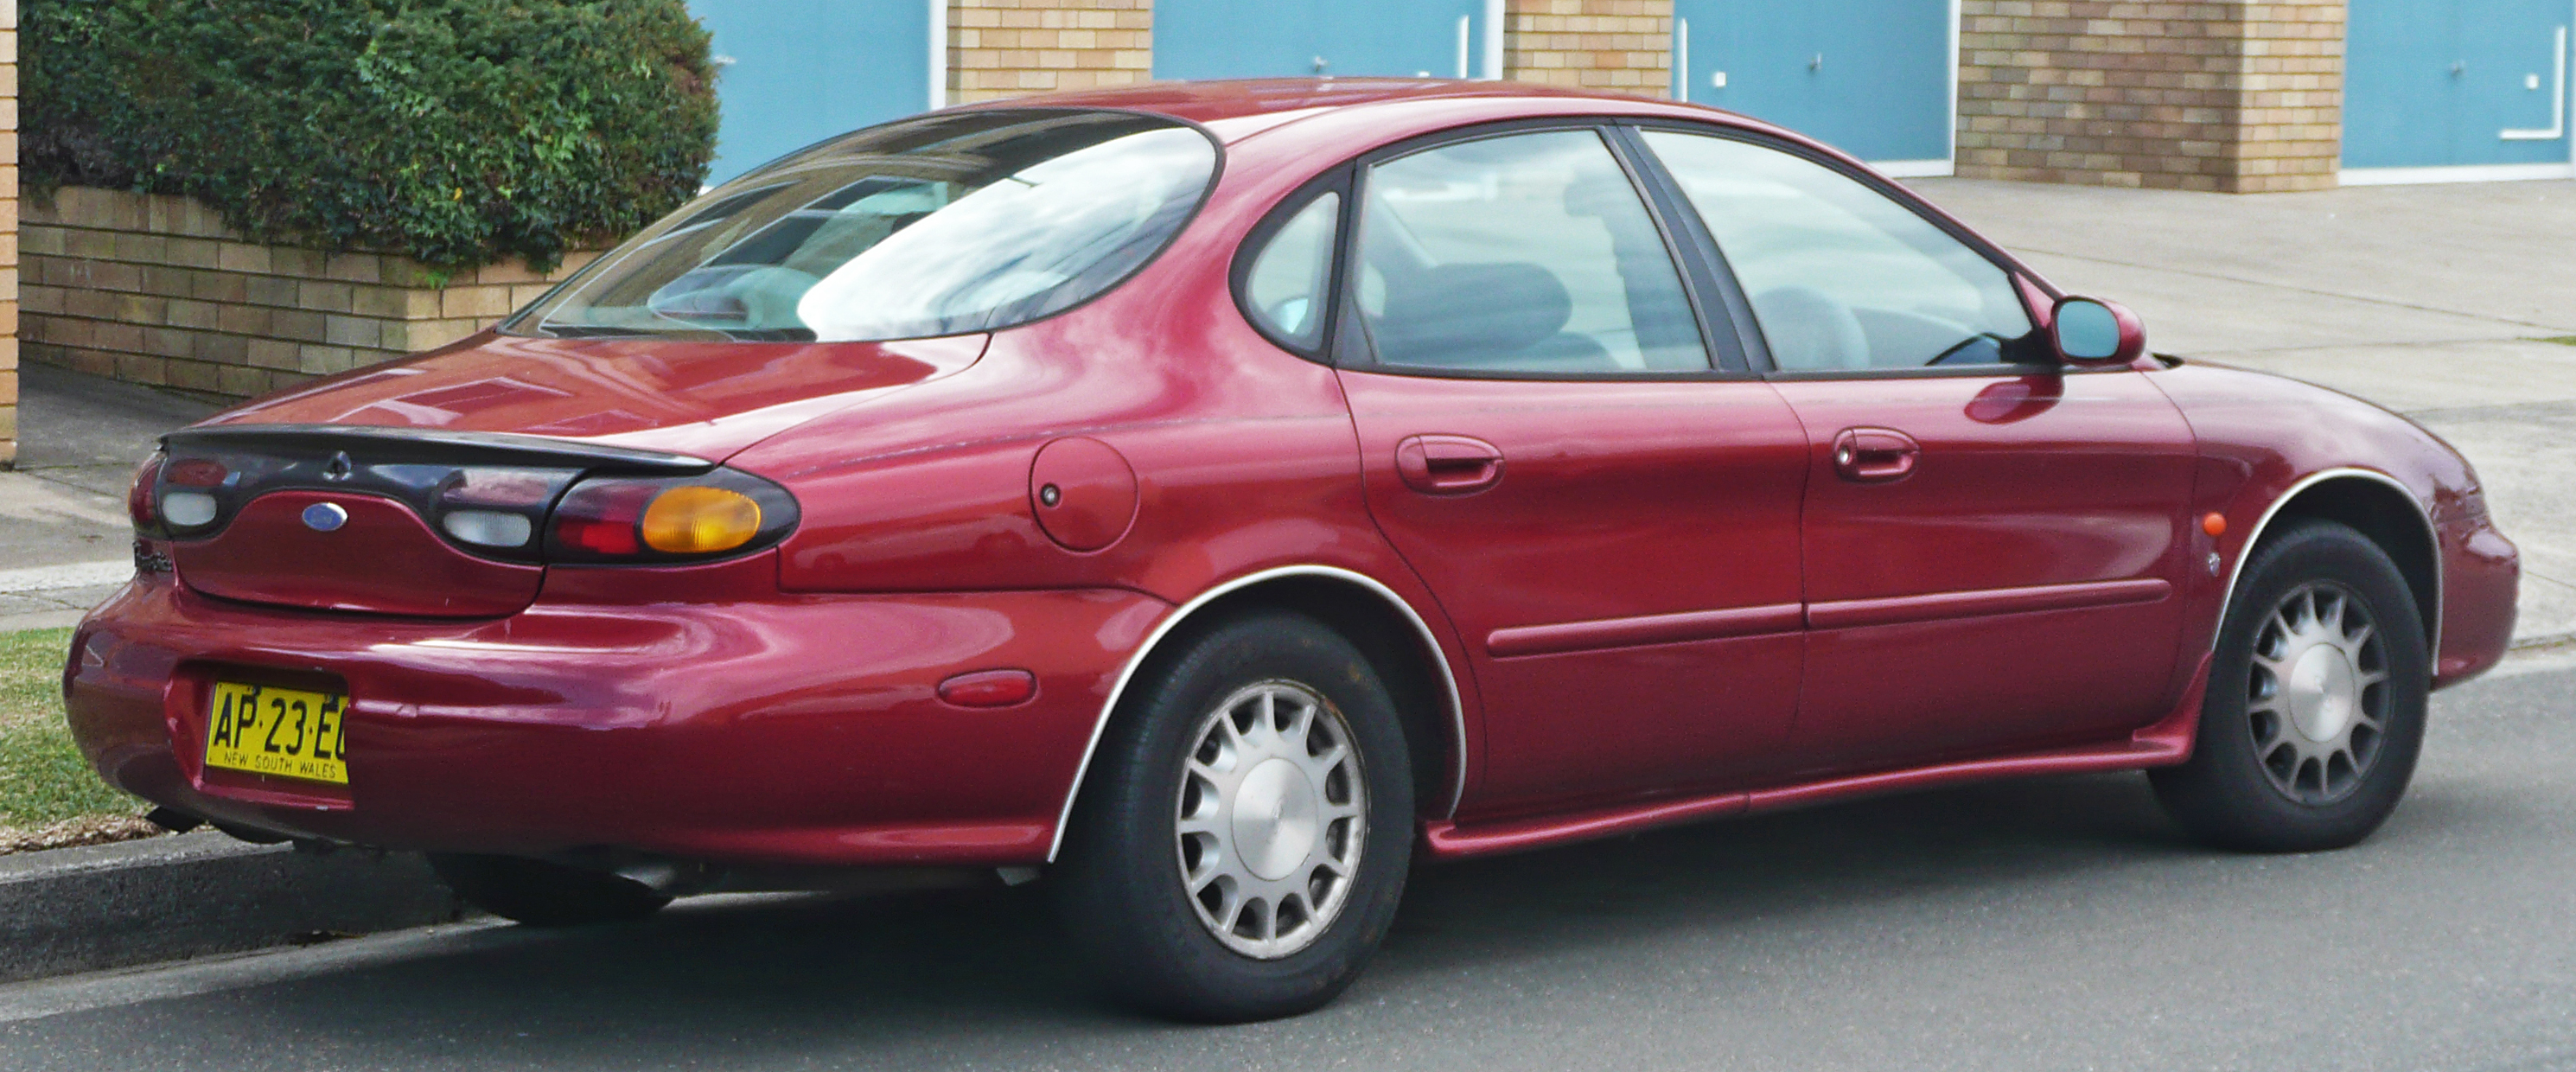 1990 Ford Taurus >> 1996 Ford Taurus - Information and photos - ZombieDrive